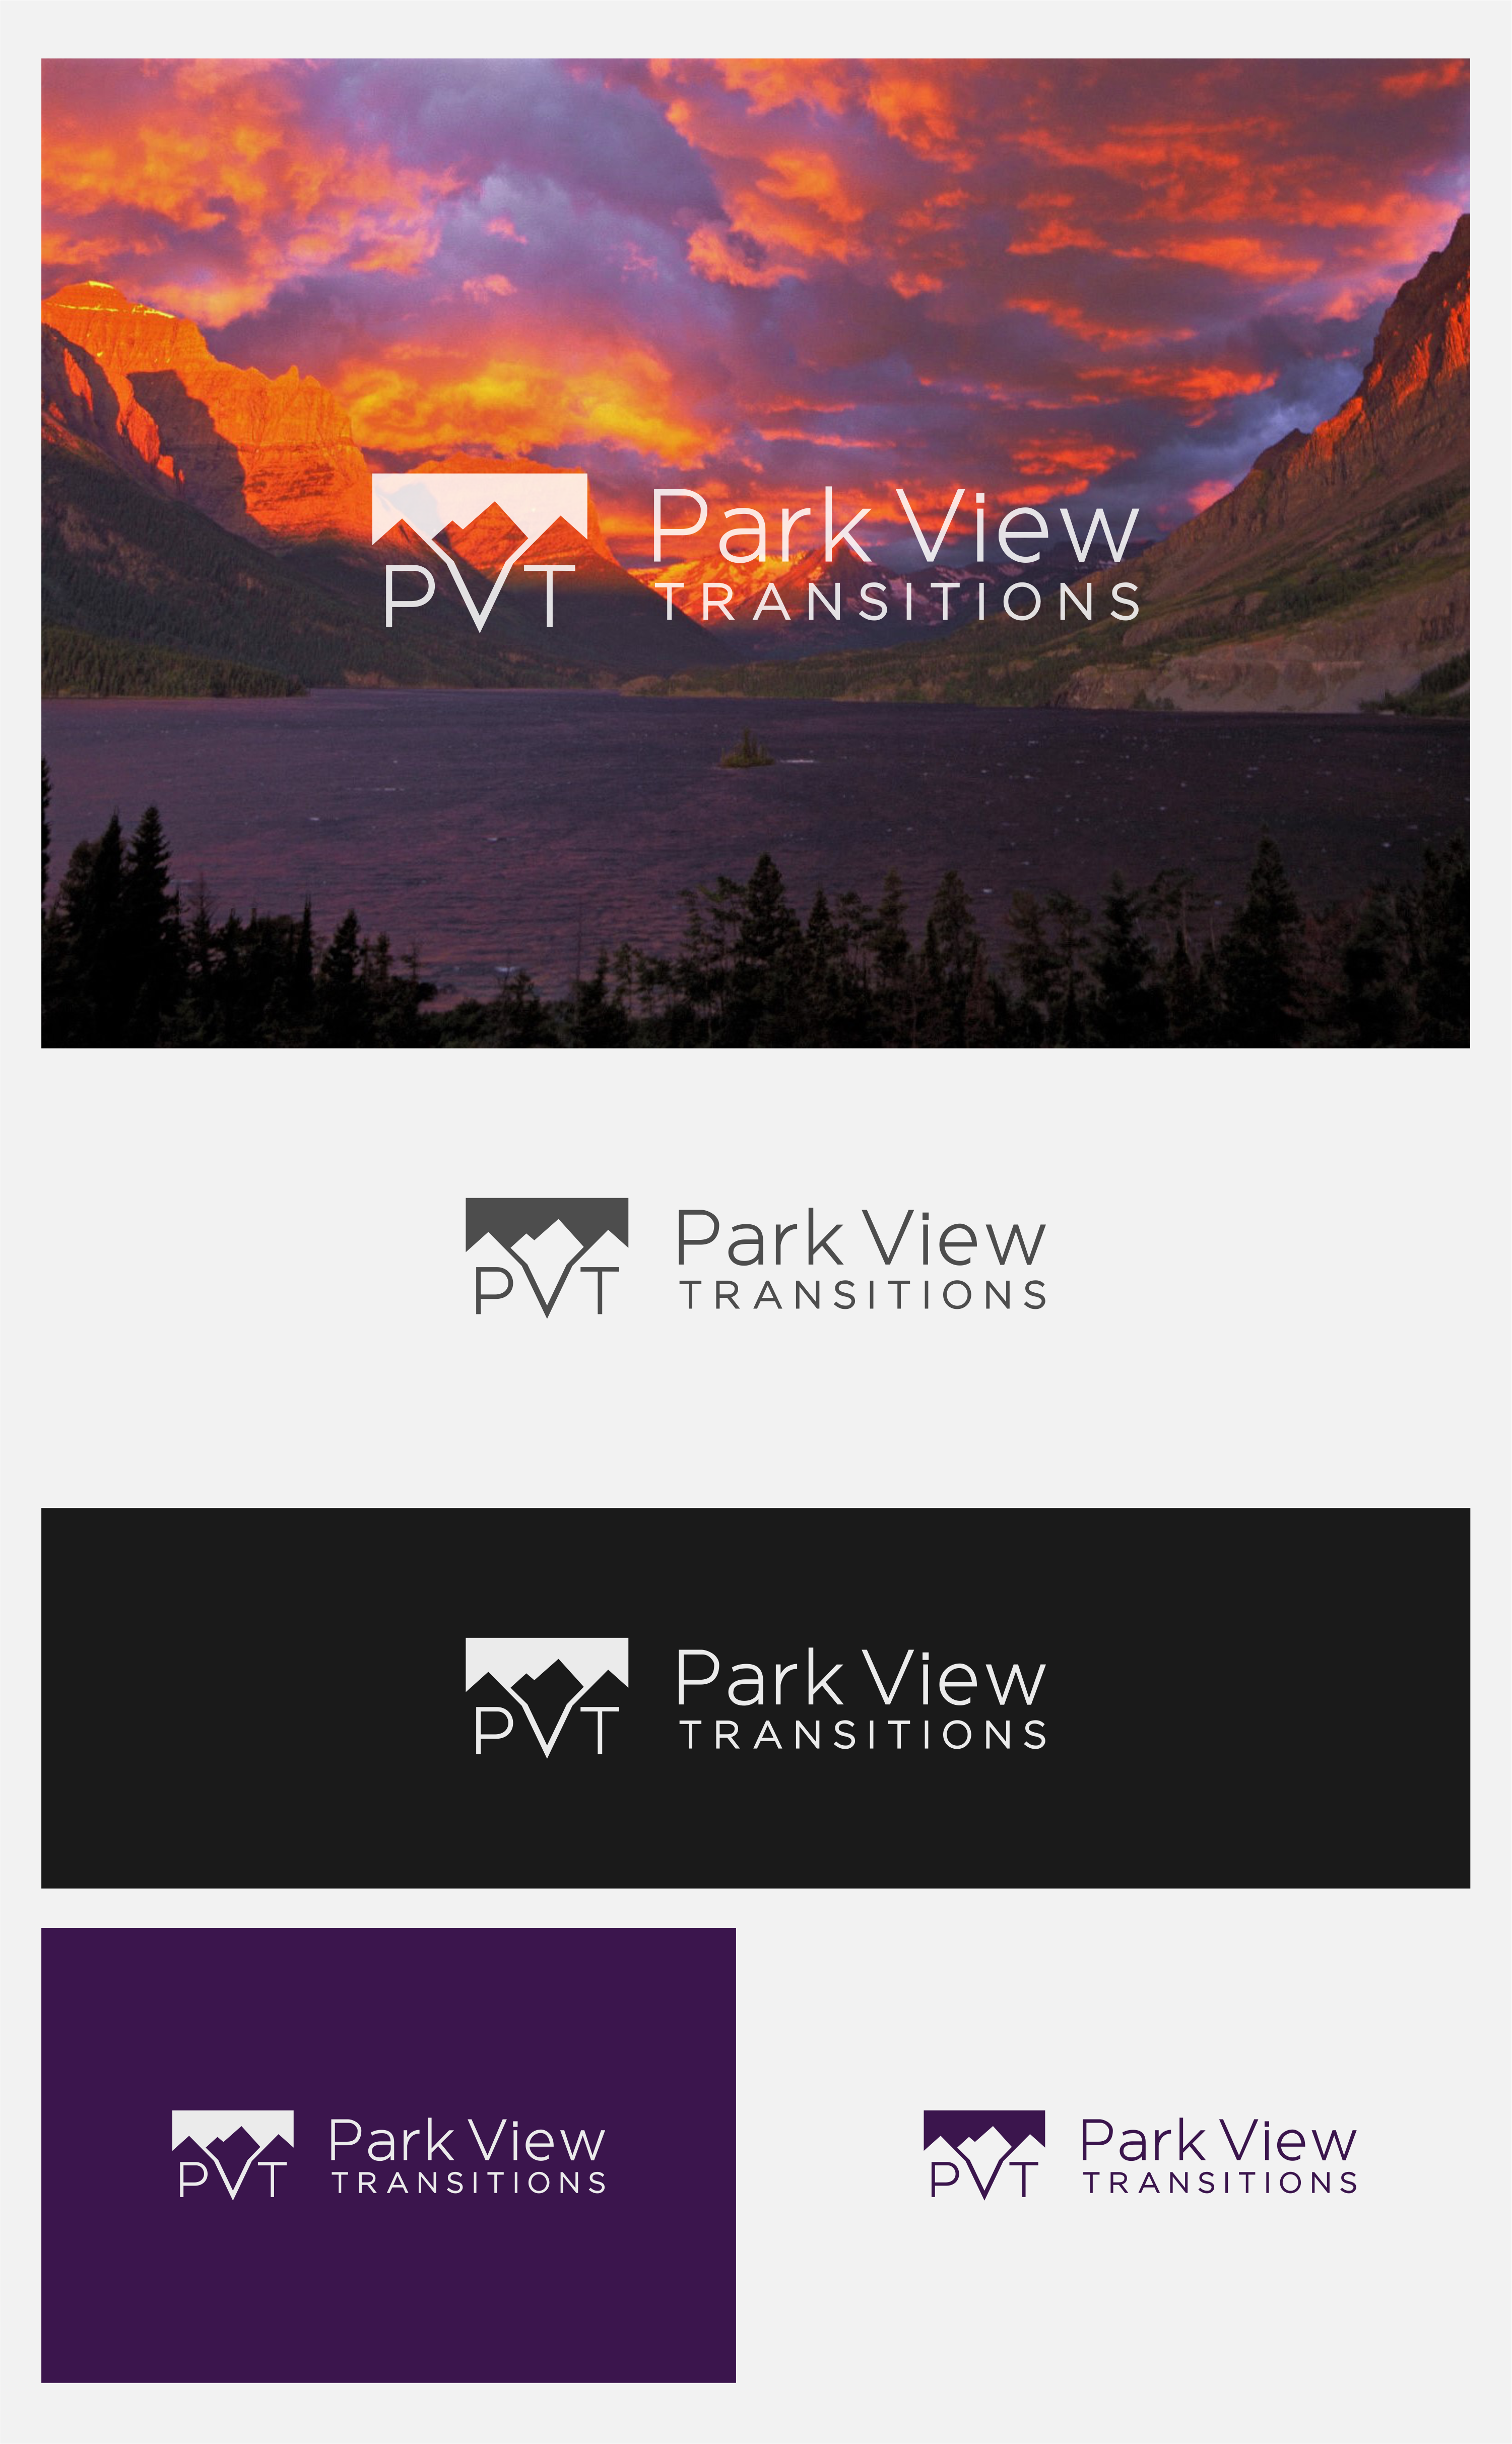 Women's issues therapist seeks mountain/park themed logo